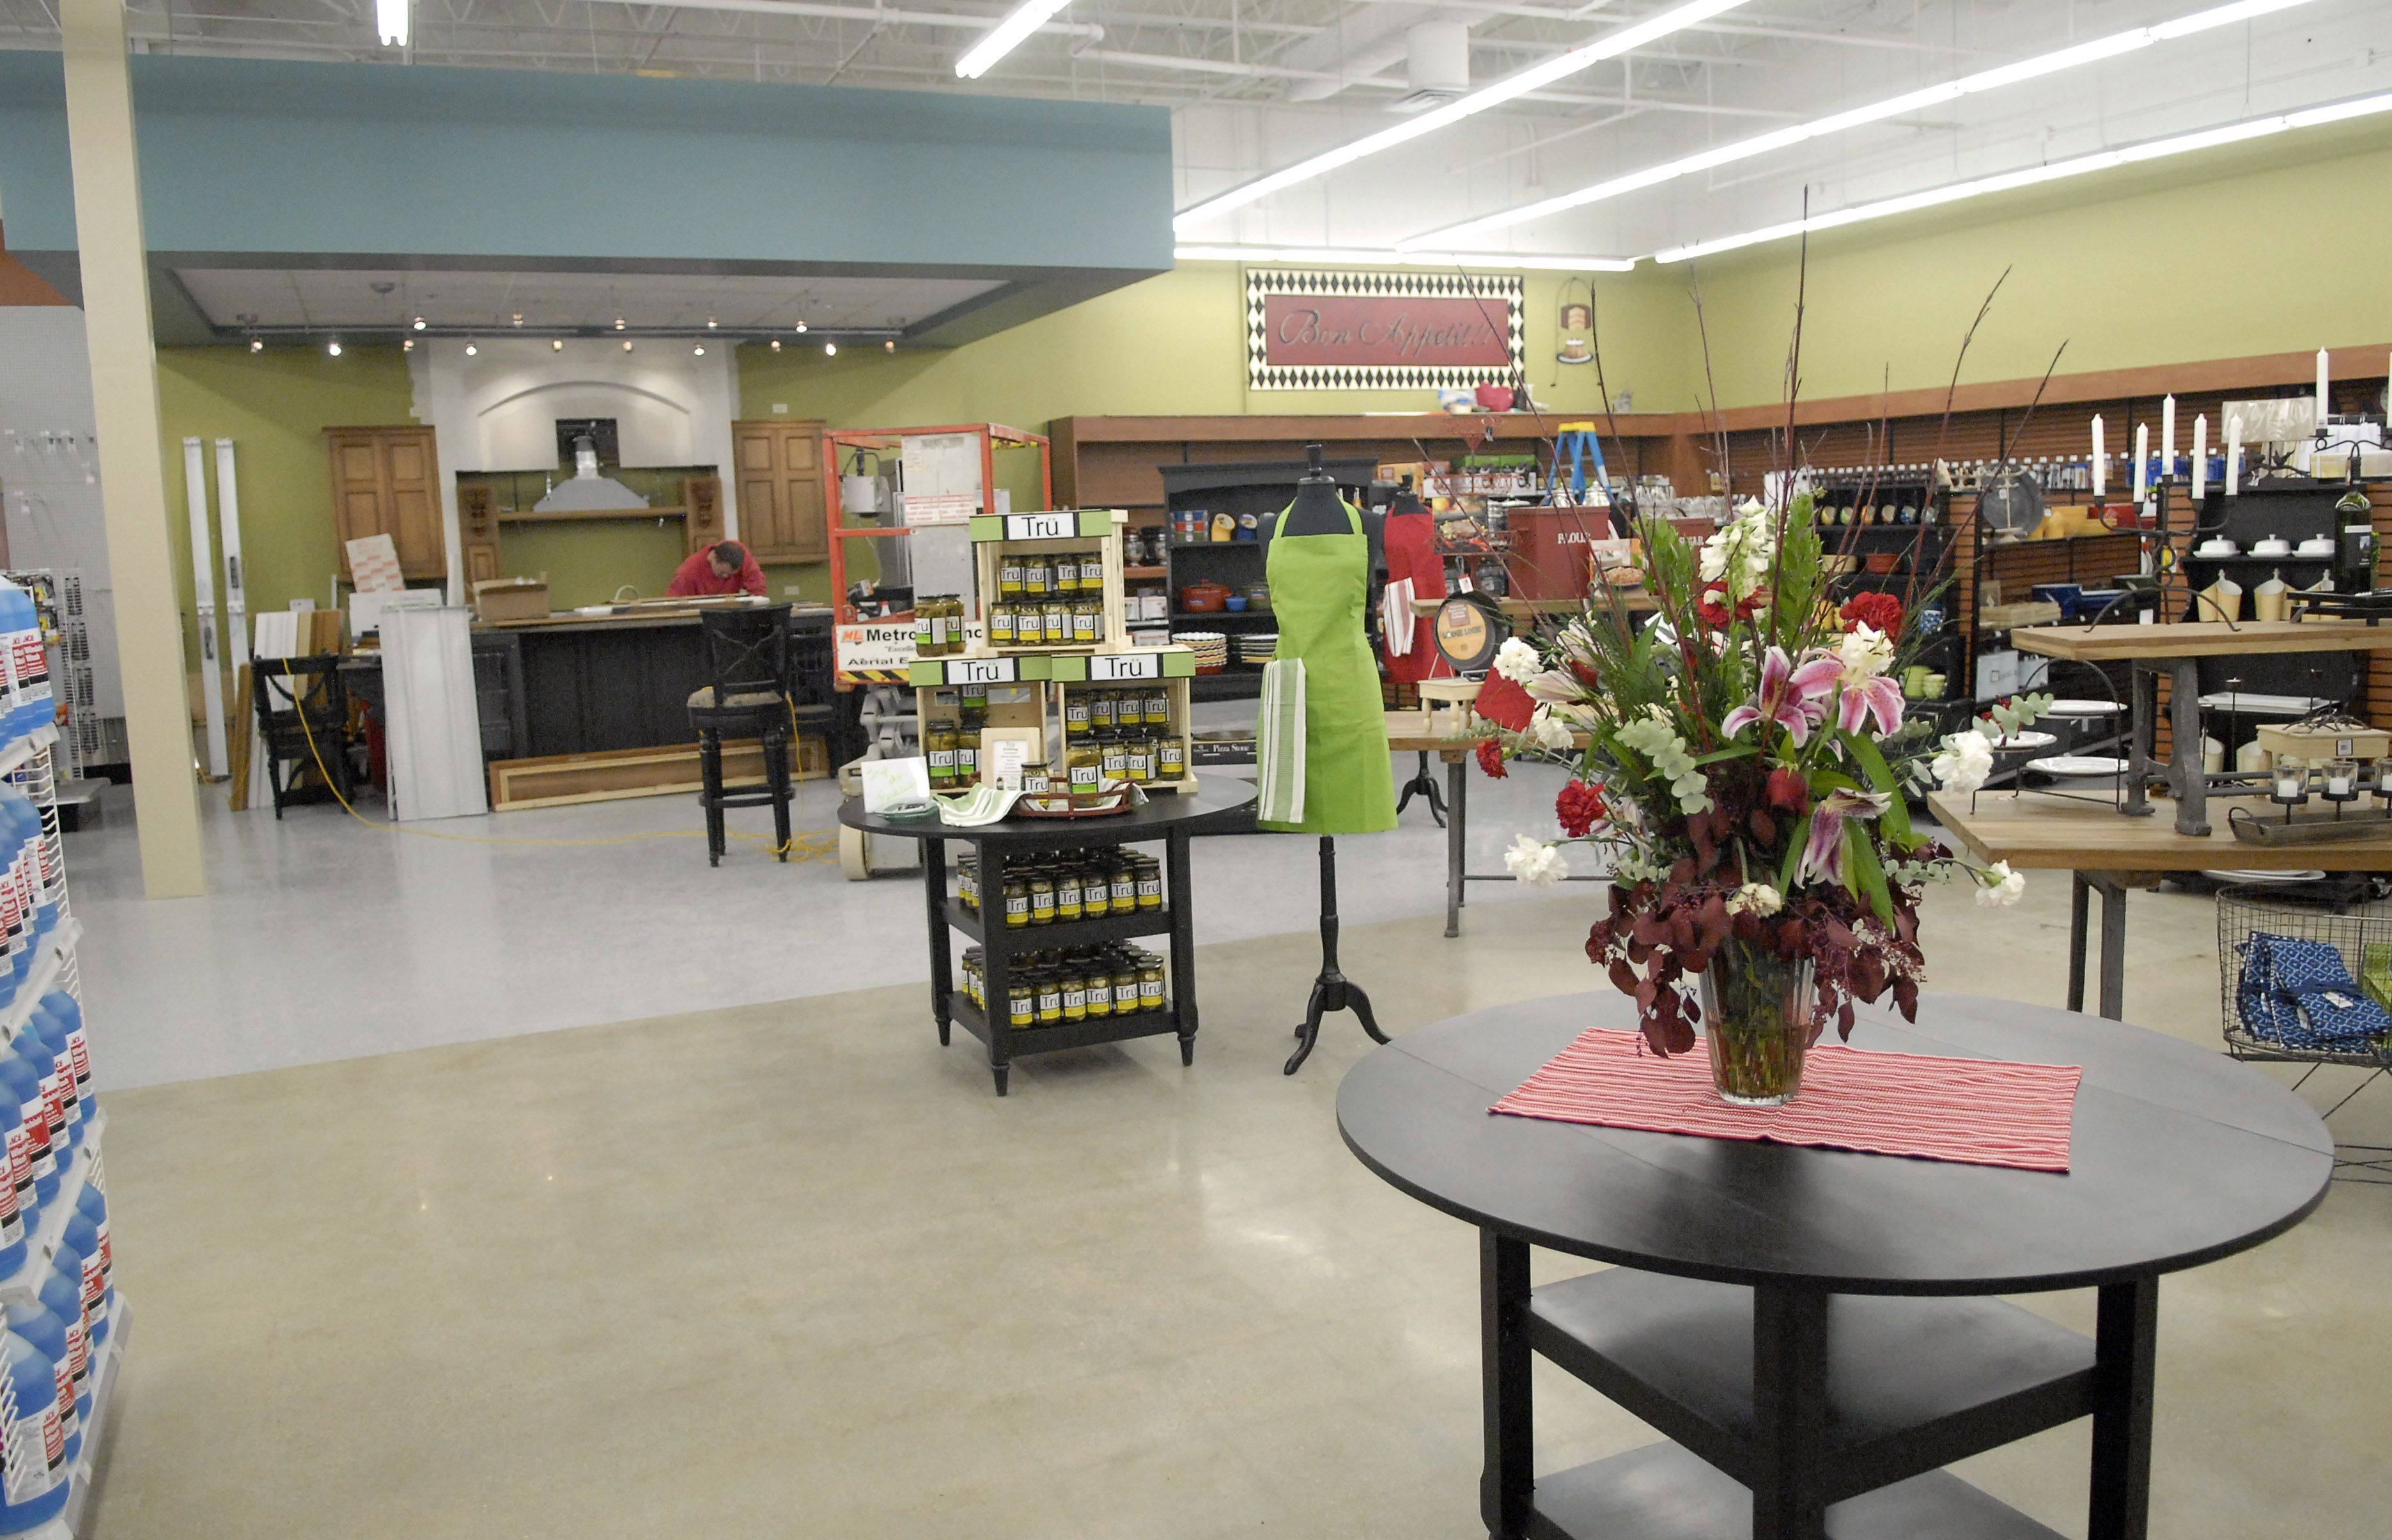 The Geneva Ace Hardware has reopened with new owners, George and Lynn Havlicek. The layout is different from in the past and there is a design area handled by Lynn, an interior designer. A demonstration kitchen is also being installed.